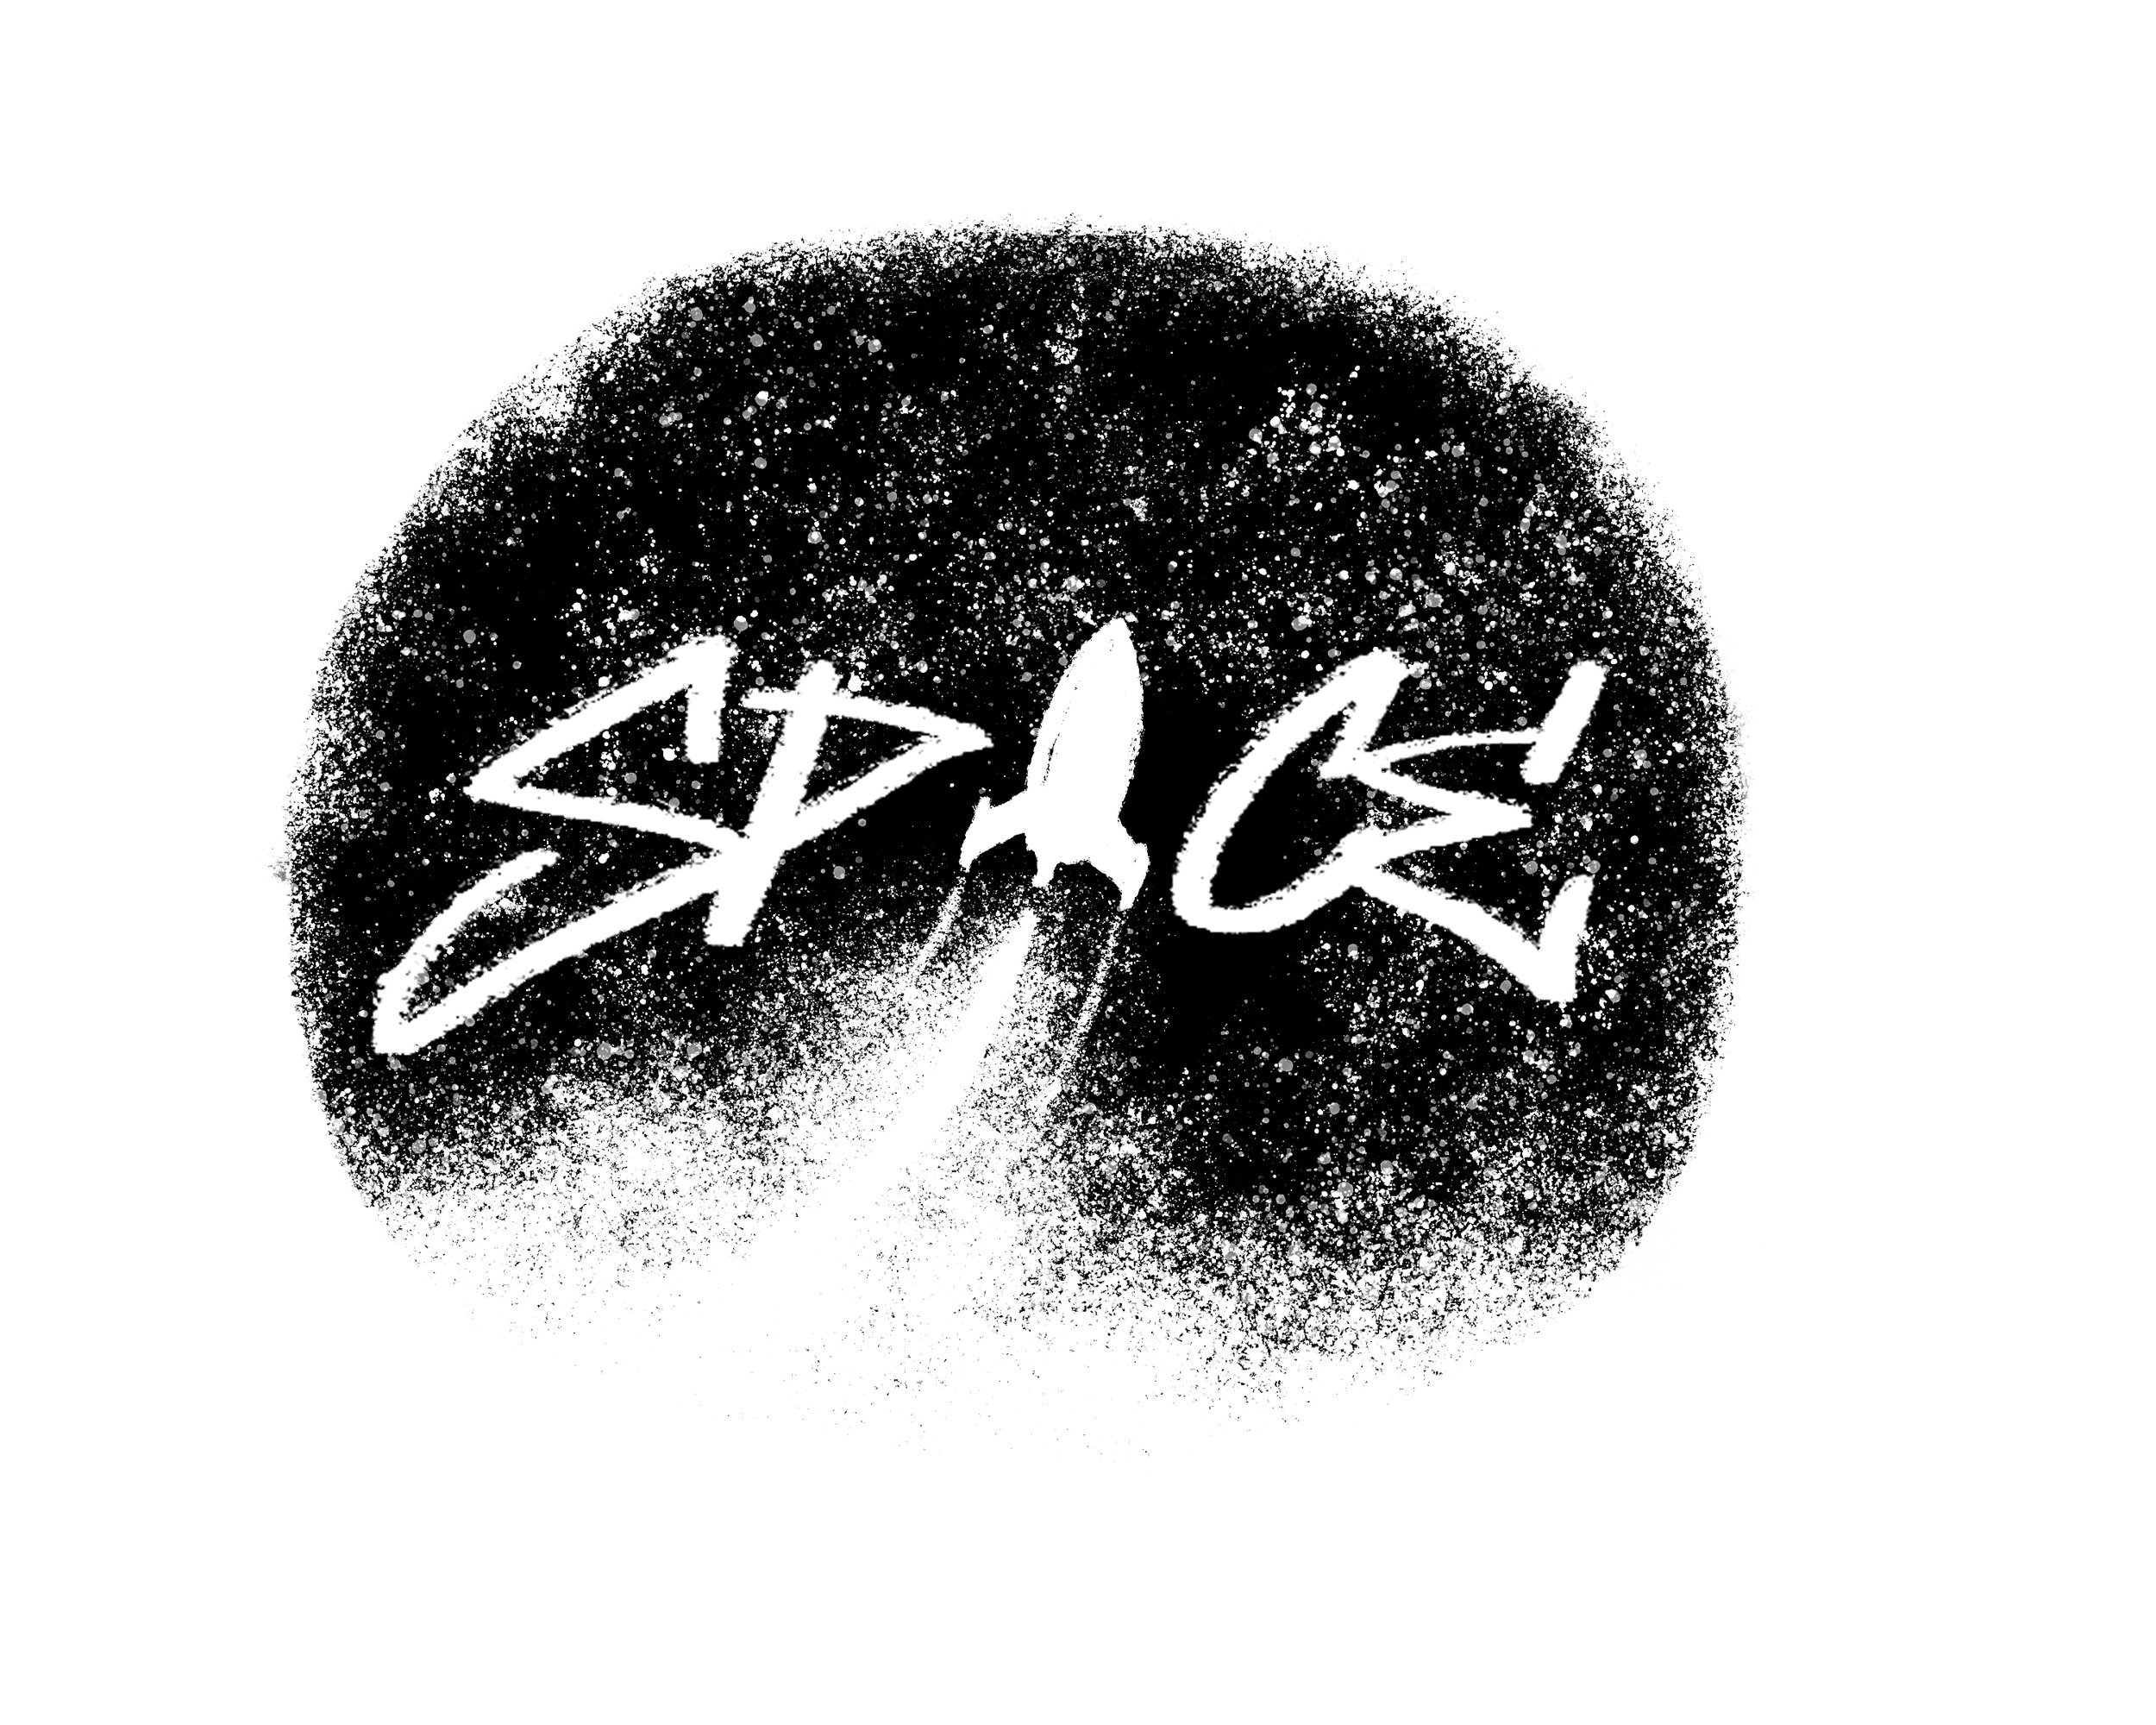 SPACE-logo-rv4-bw.jpg